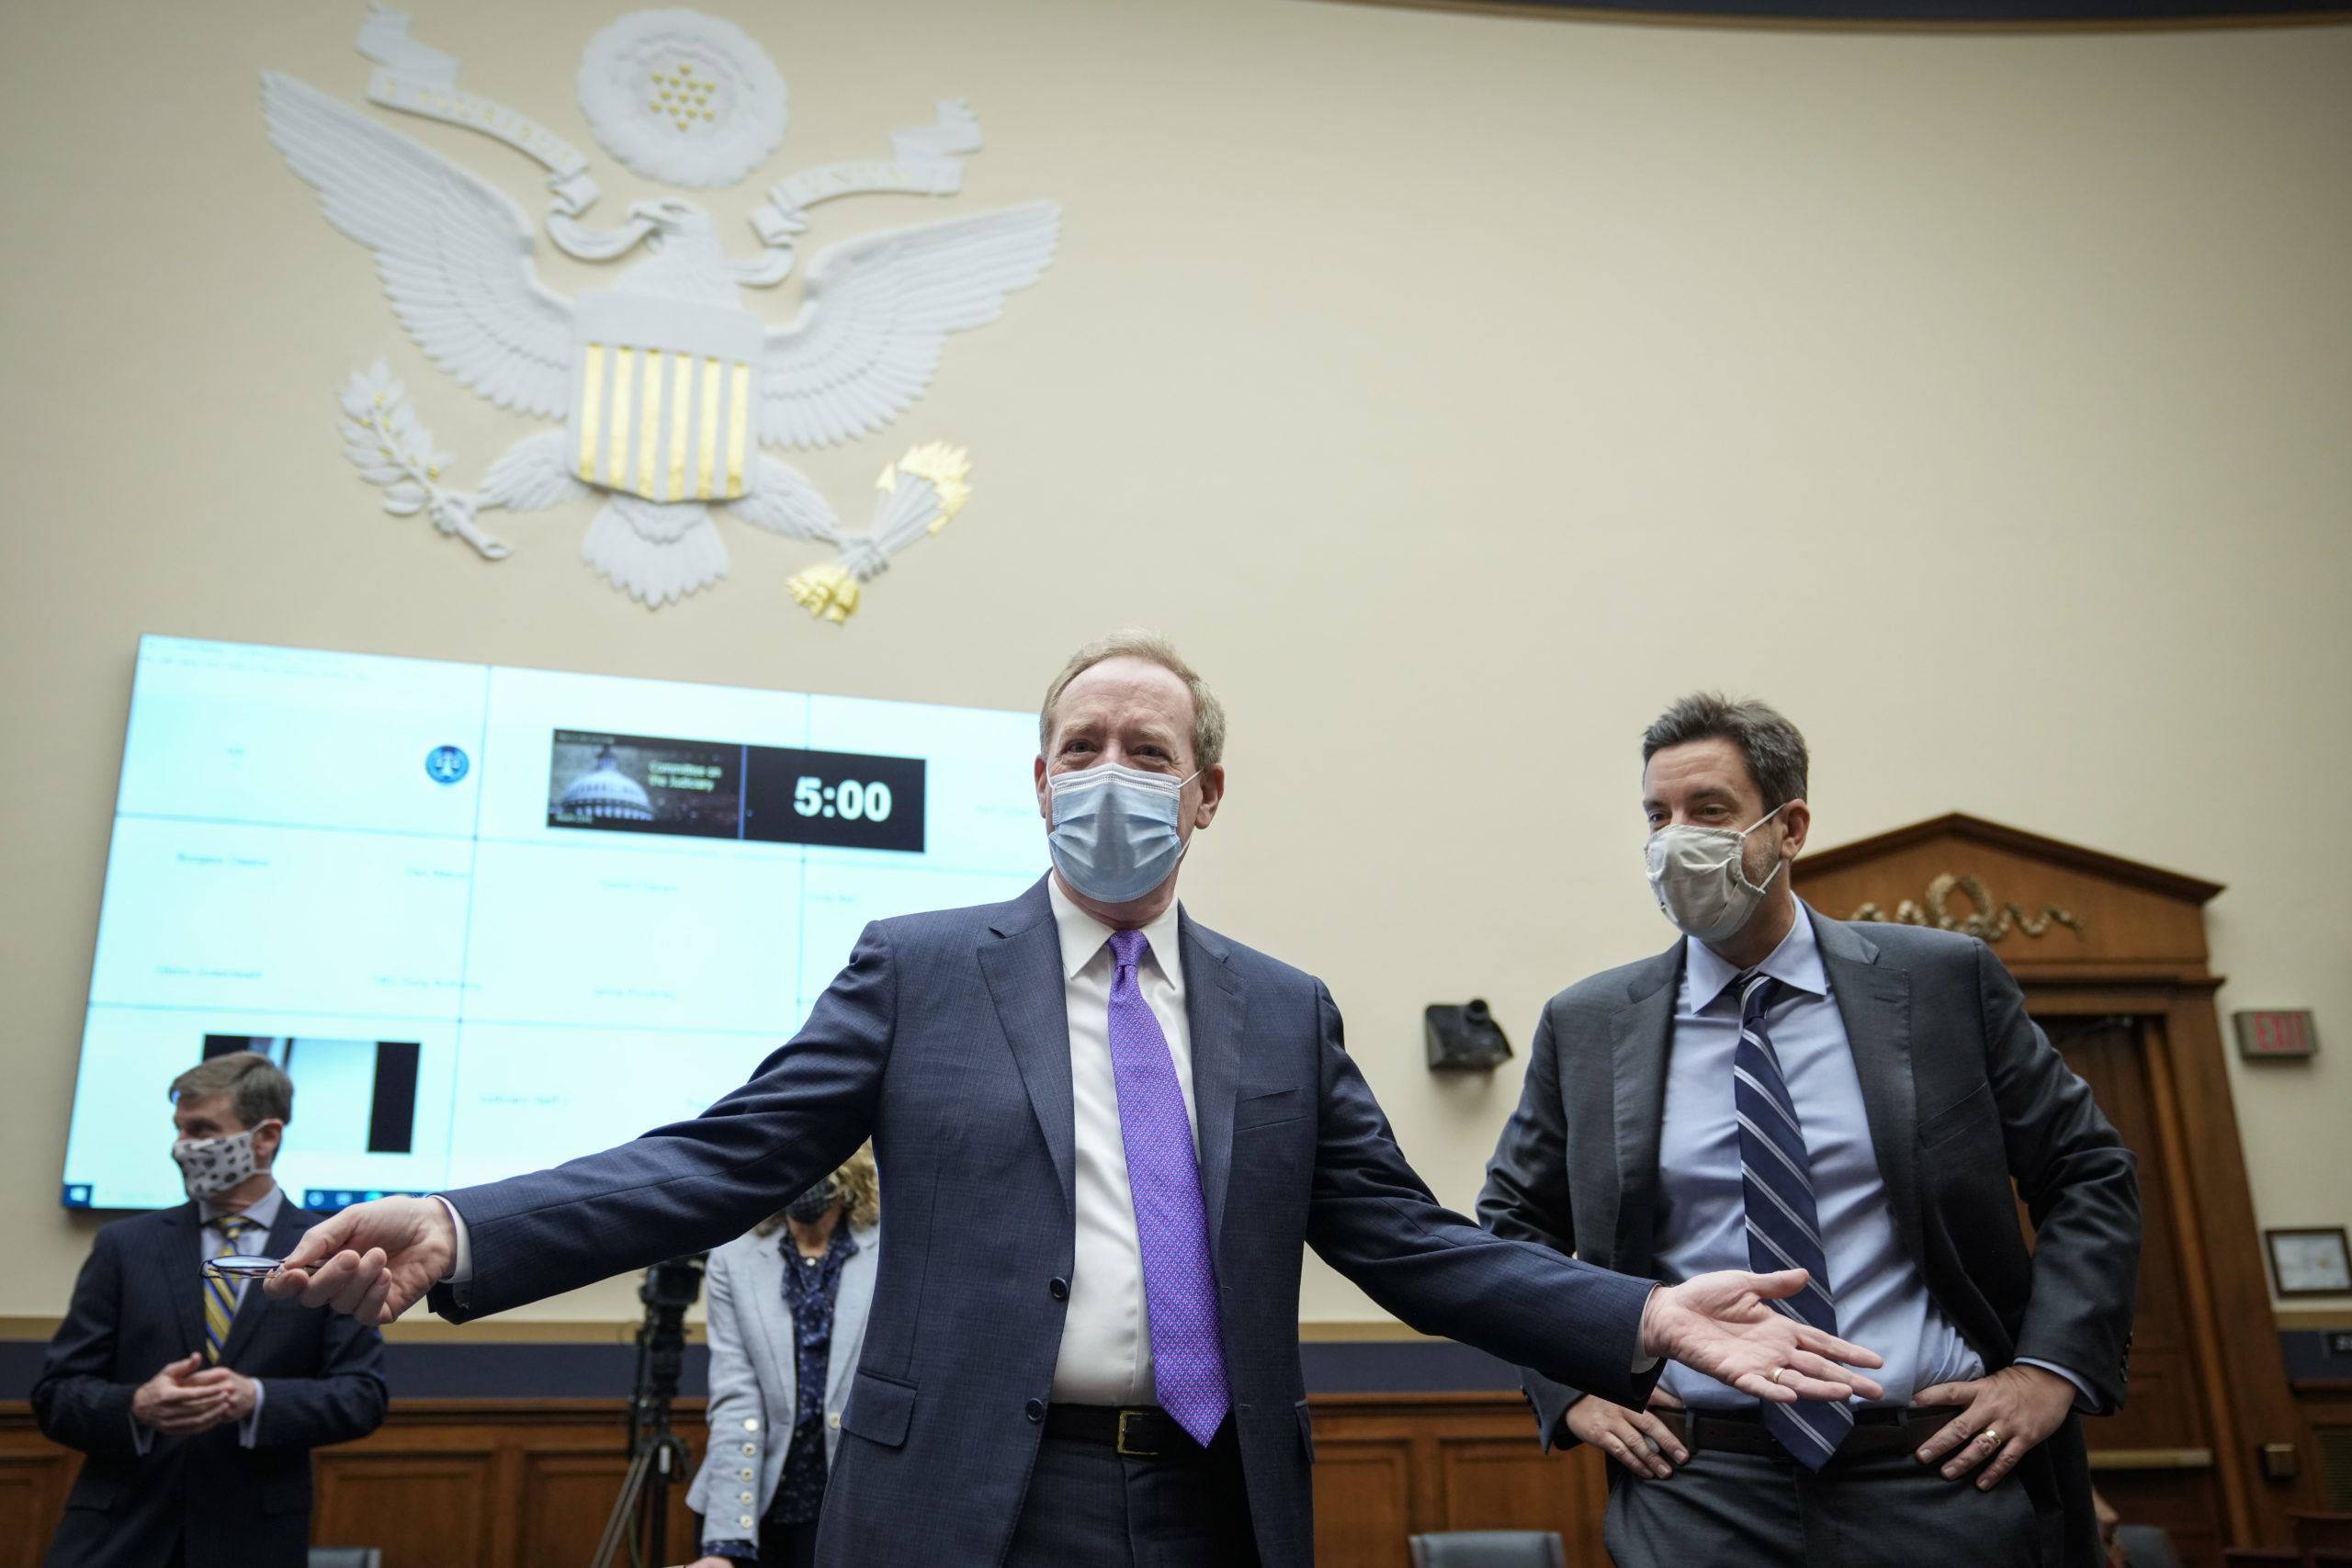 Microsoft President Brad Smith arrives to a House Judiciary Committee hearing on March 12. (Drew Angerer/Getty Images)